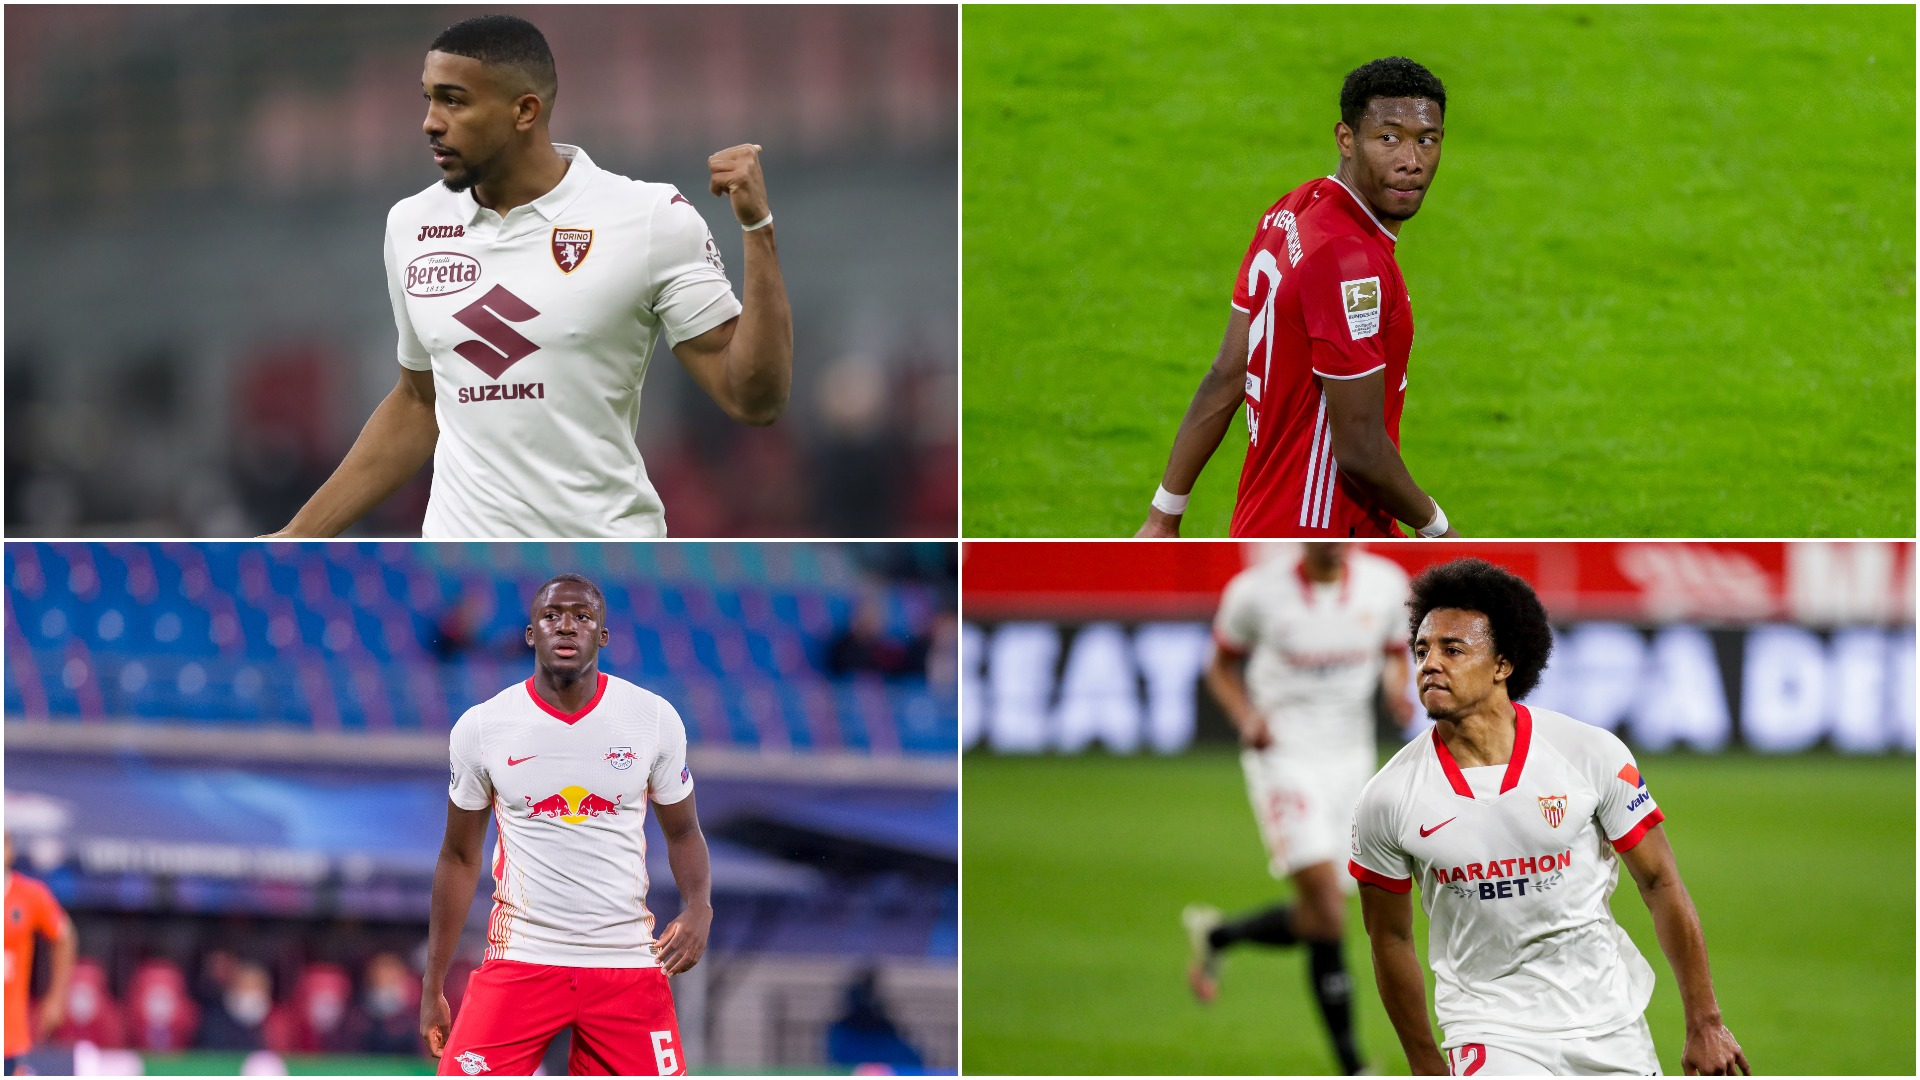 Bremer Anfield-bound? Konate to the Bridge? – What next for Liverpool & Chelsea after missing out on Upamecano?